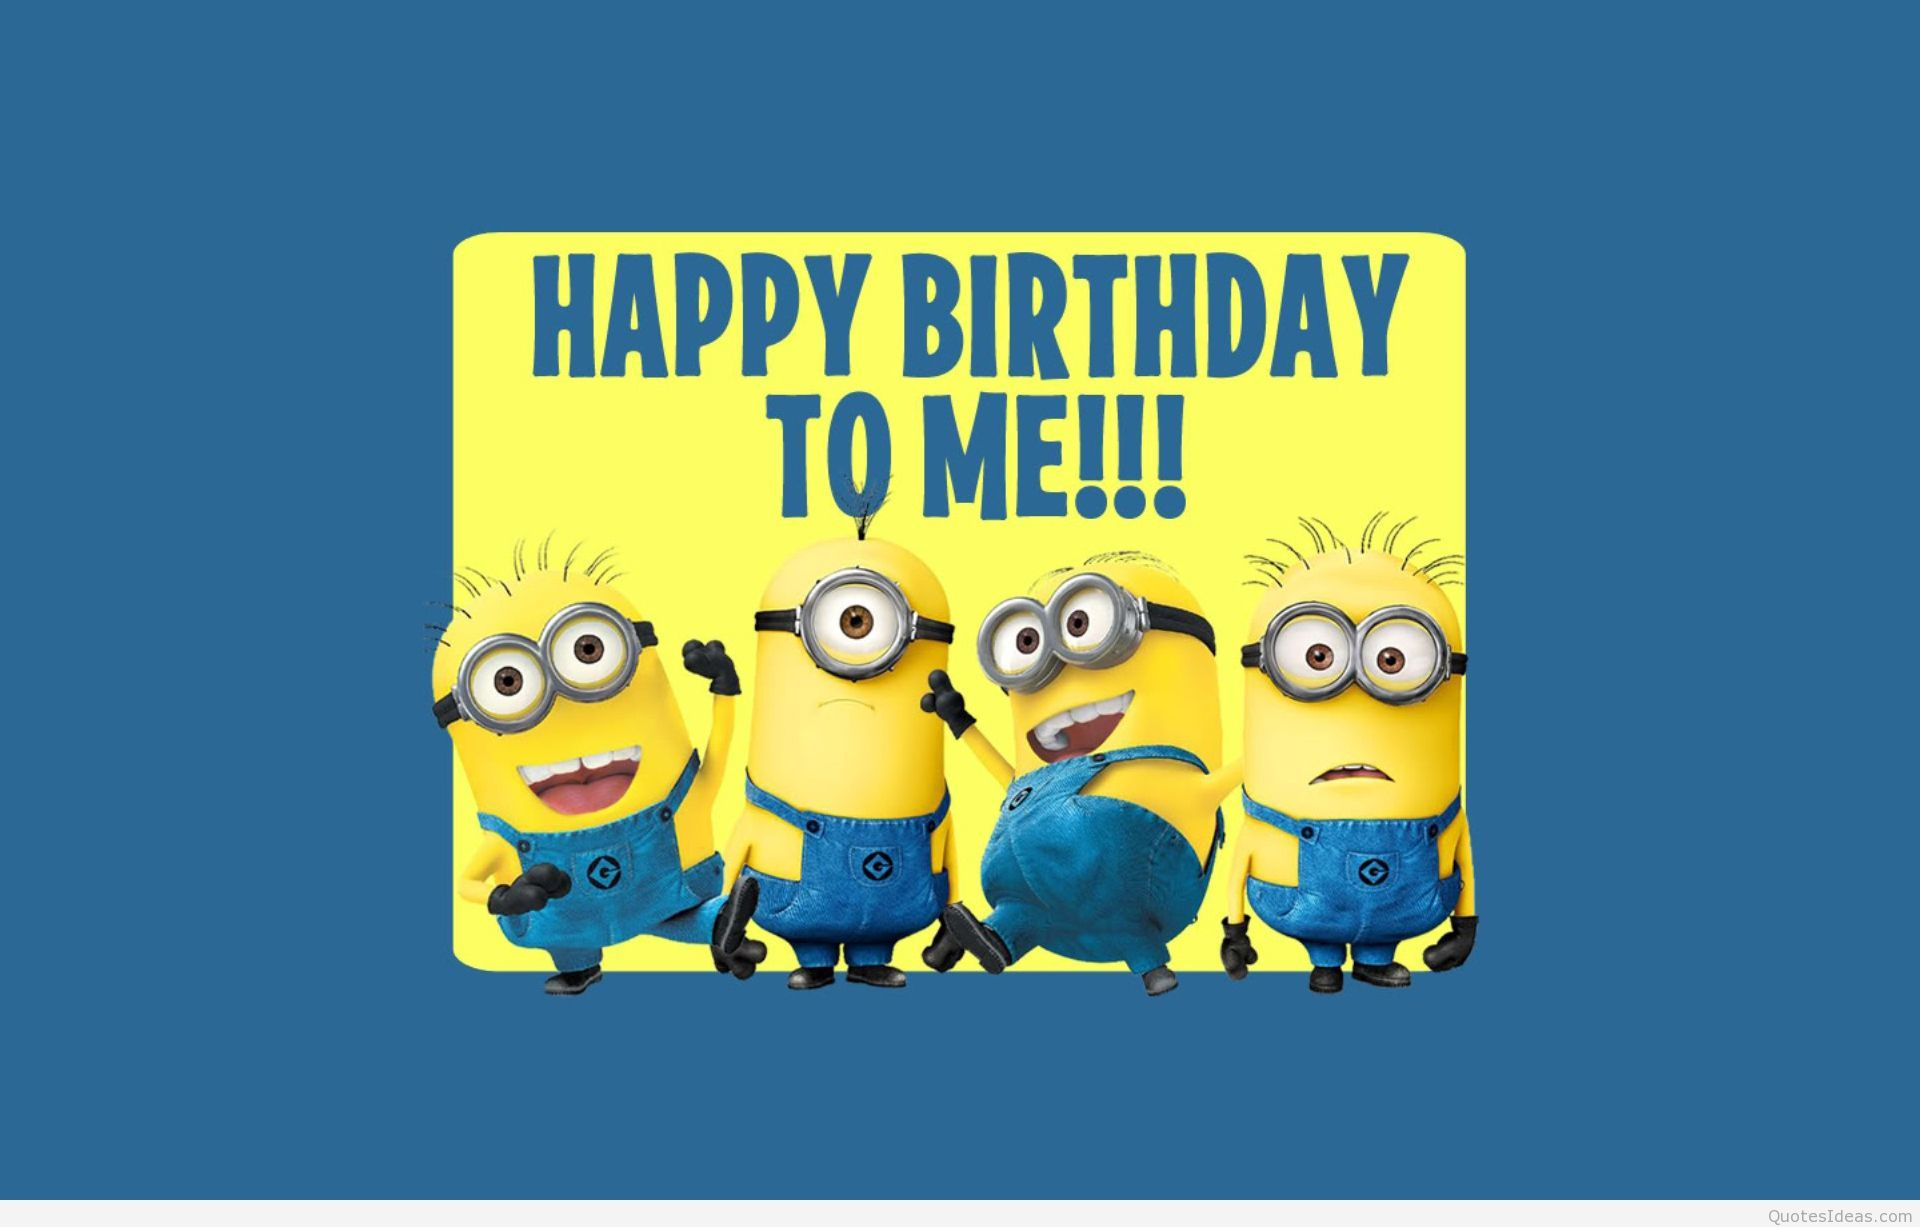 Minions backgrounds quotes and images Happy Birthday Minion 1920x1227